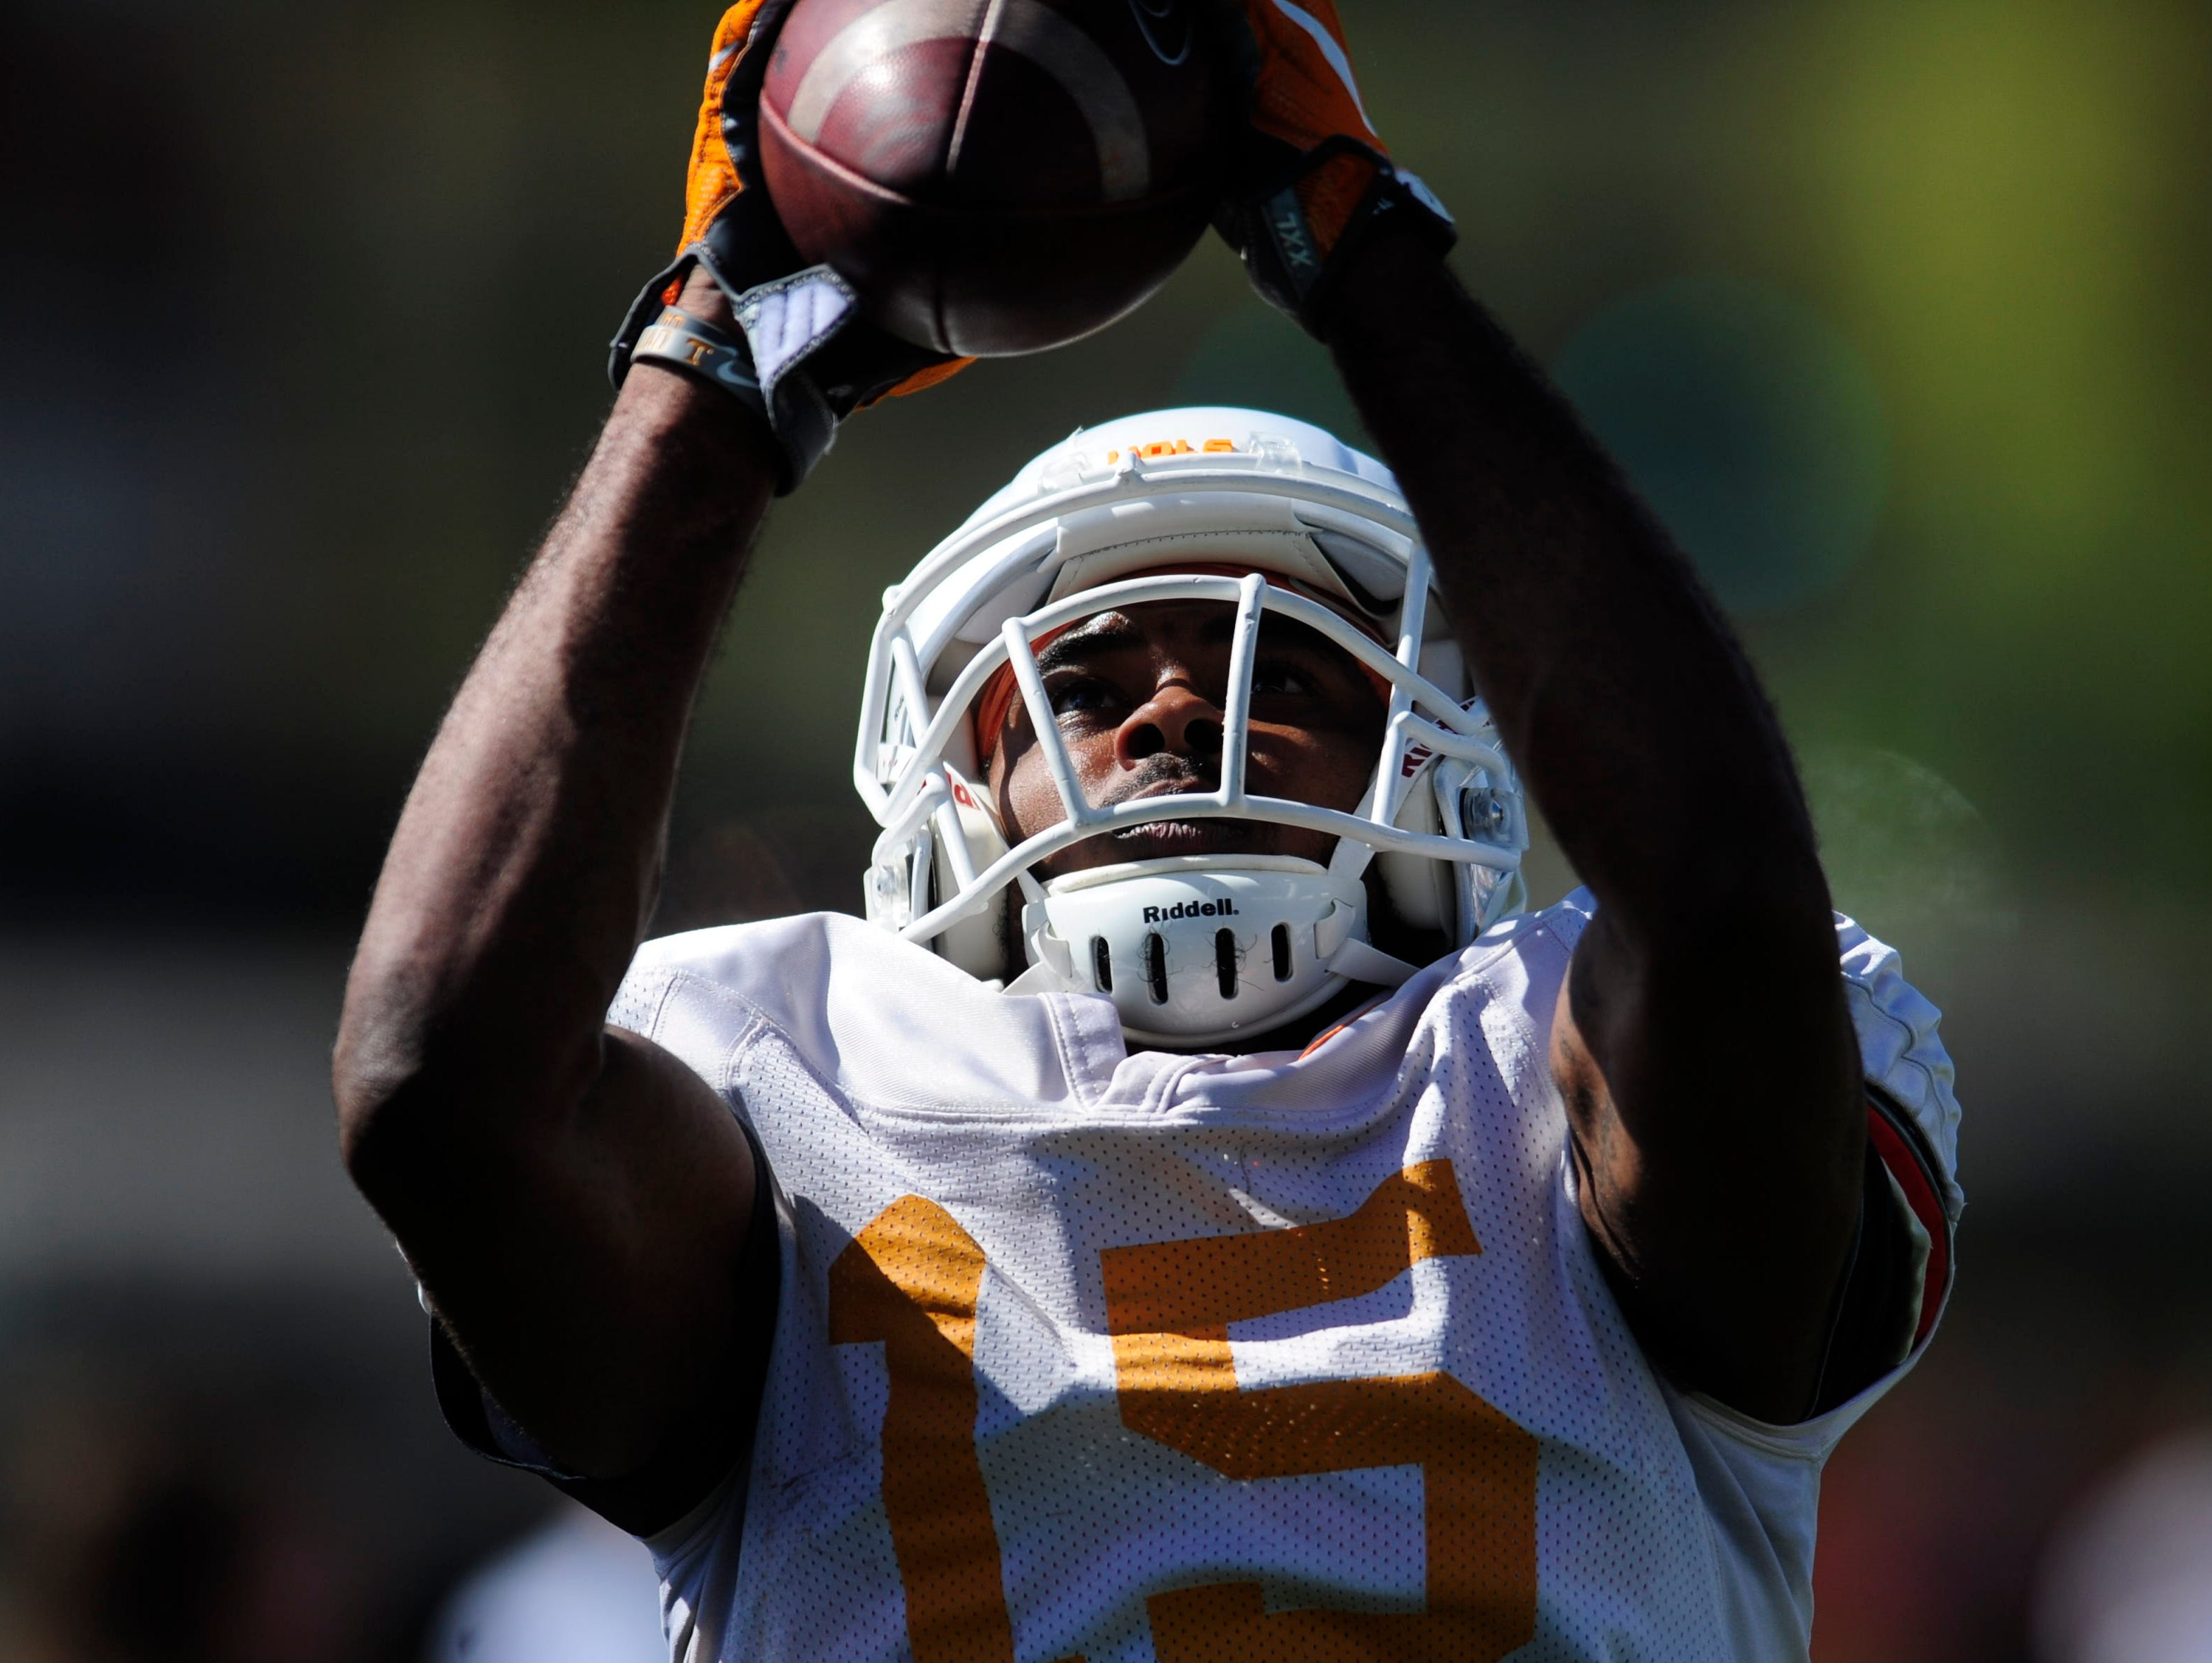 Tennessee's Jauan Jennings (15) catches a ball during Tennessee Volunteers spring practice at Anderson Training Facility in Knoxville, Tennessee on Tuesday, April 4, 2017.